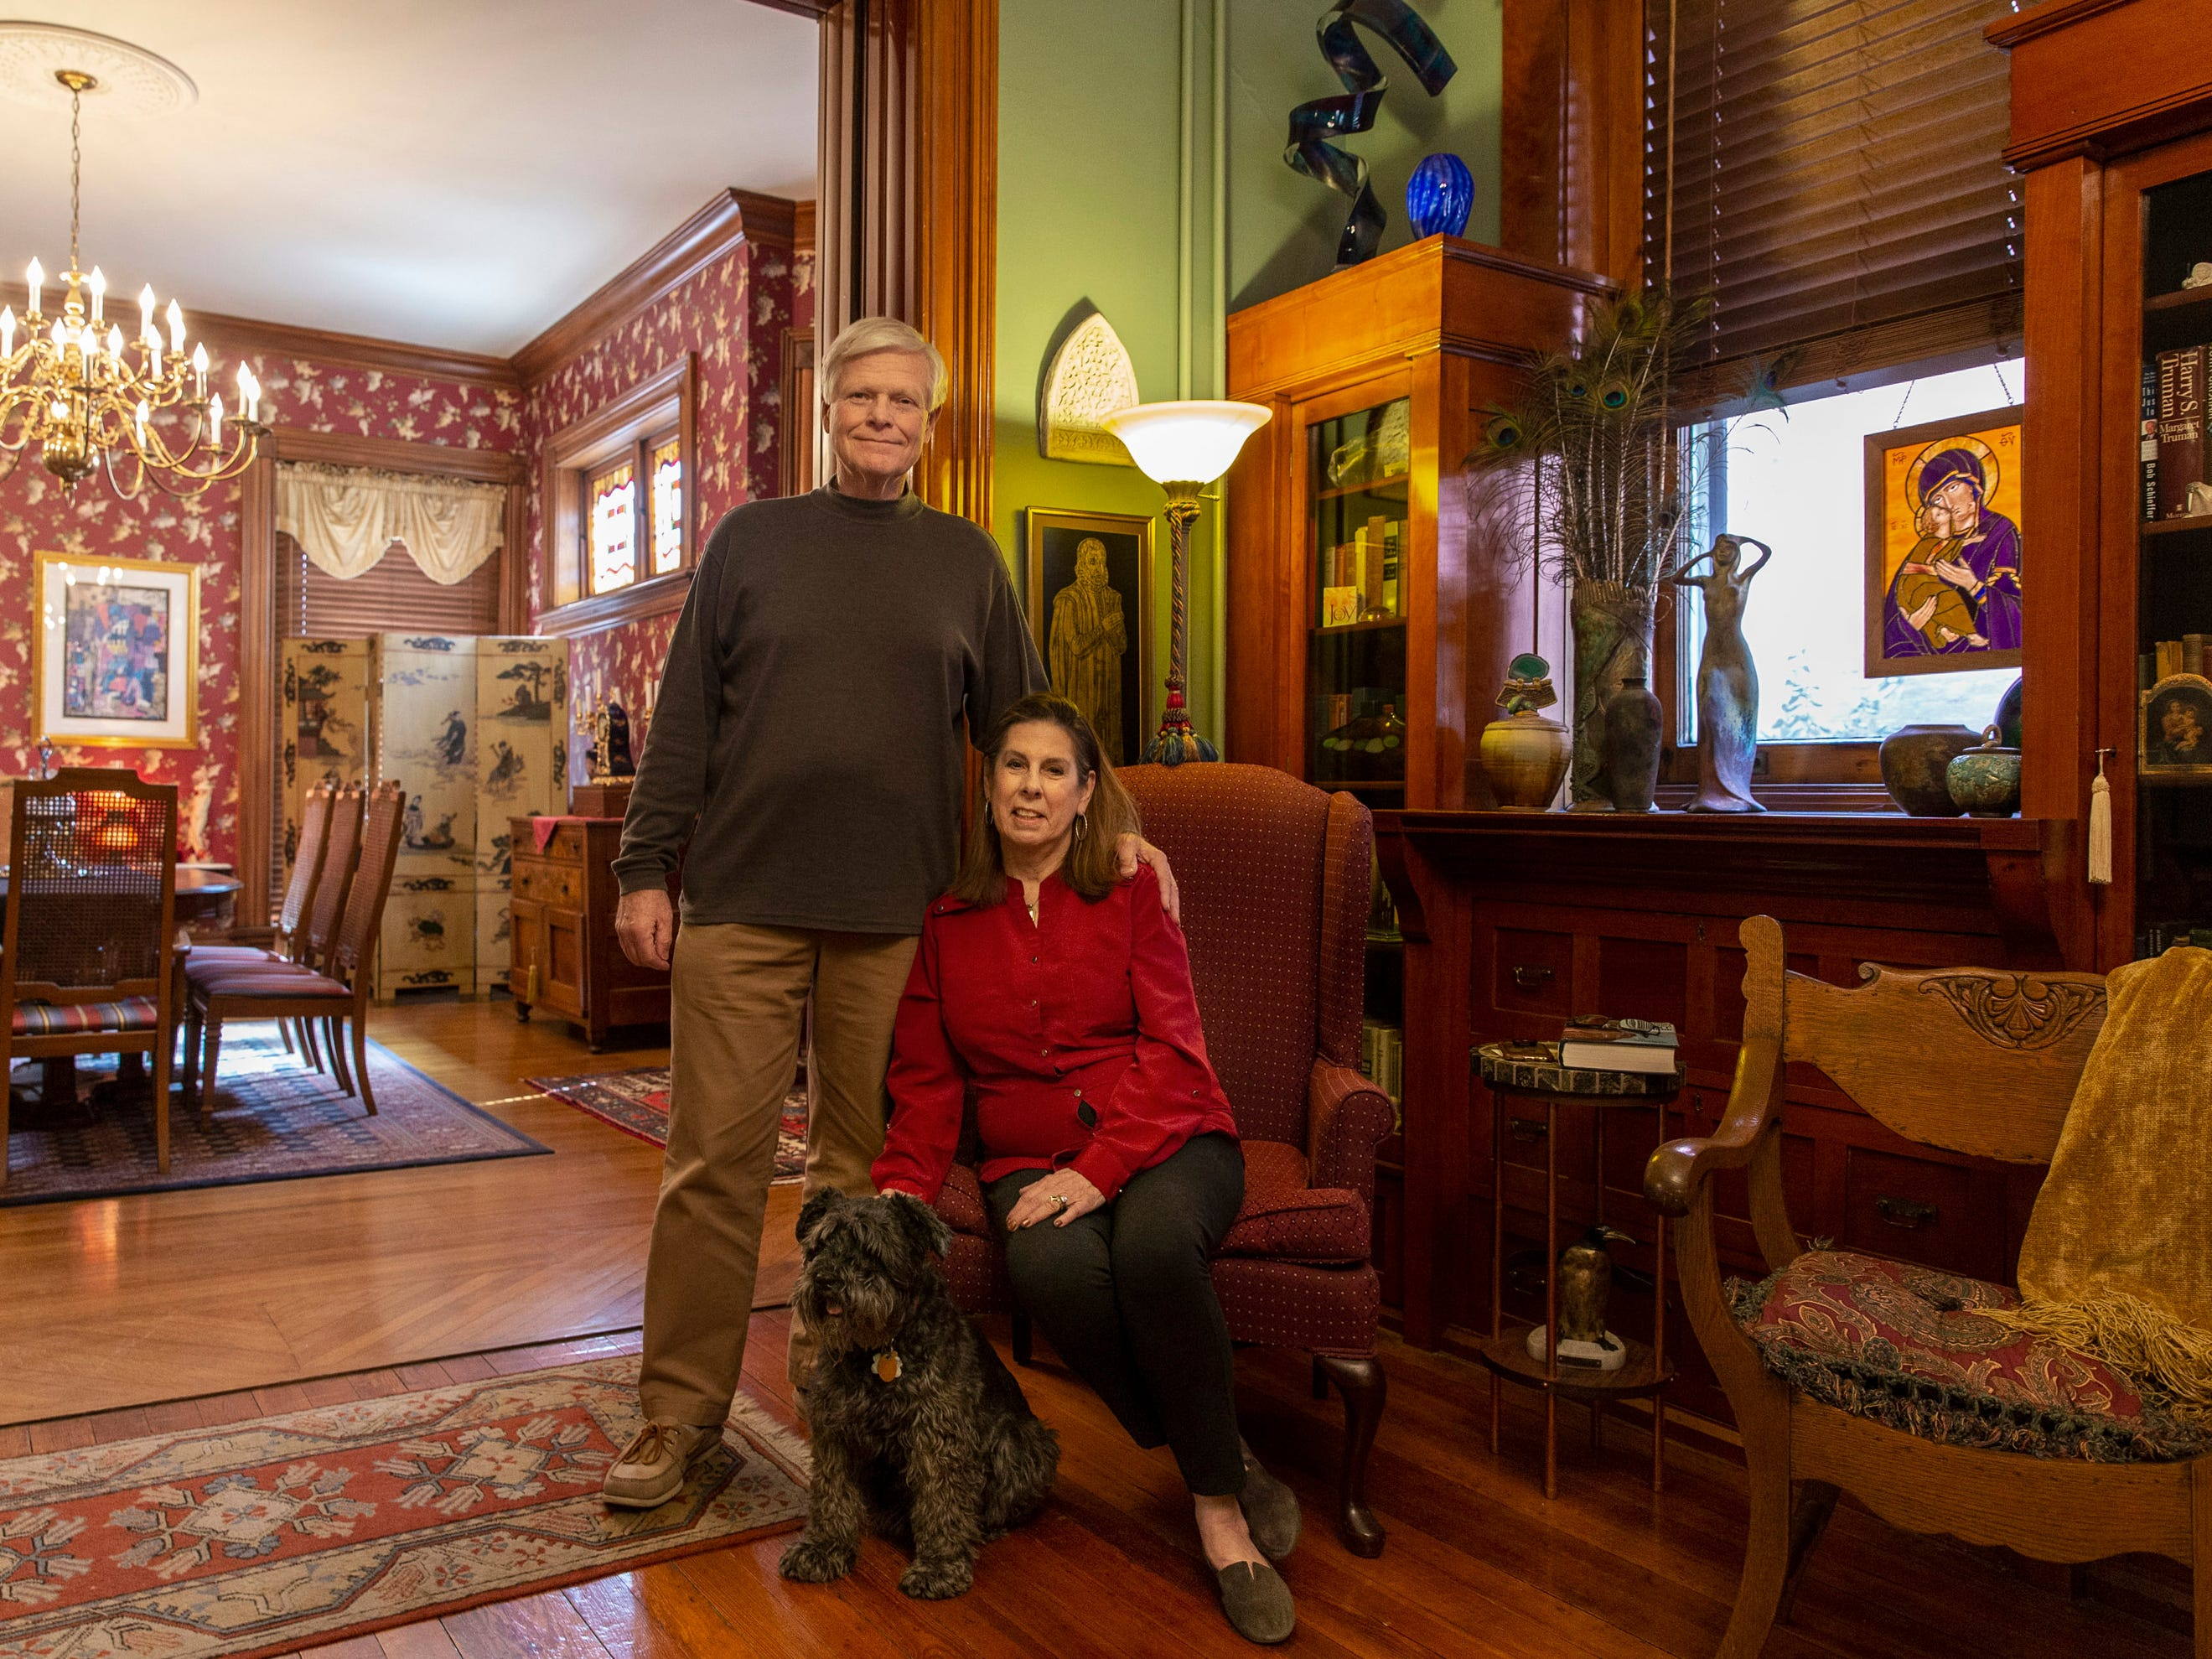 Hank and Ann Triplett's and their dog, Louie, in the living room of their home in Old Louisville. March 18, 2019.